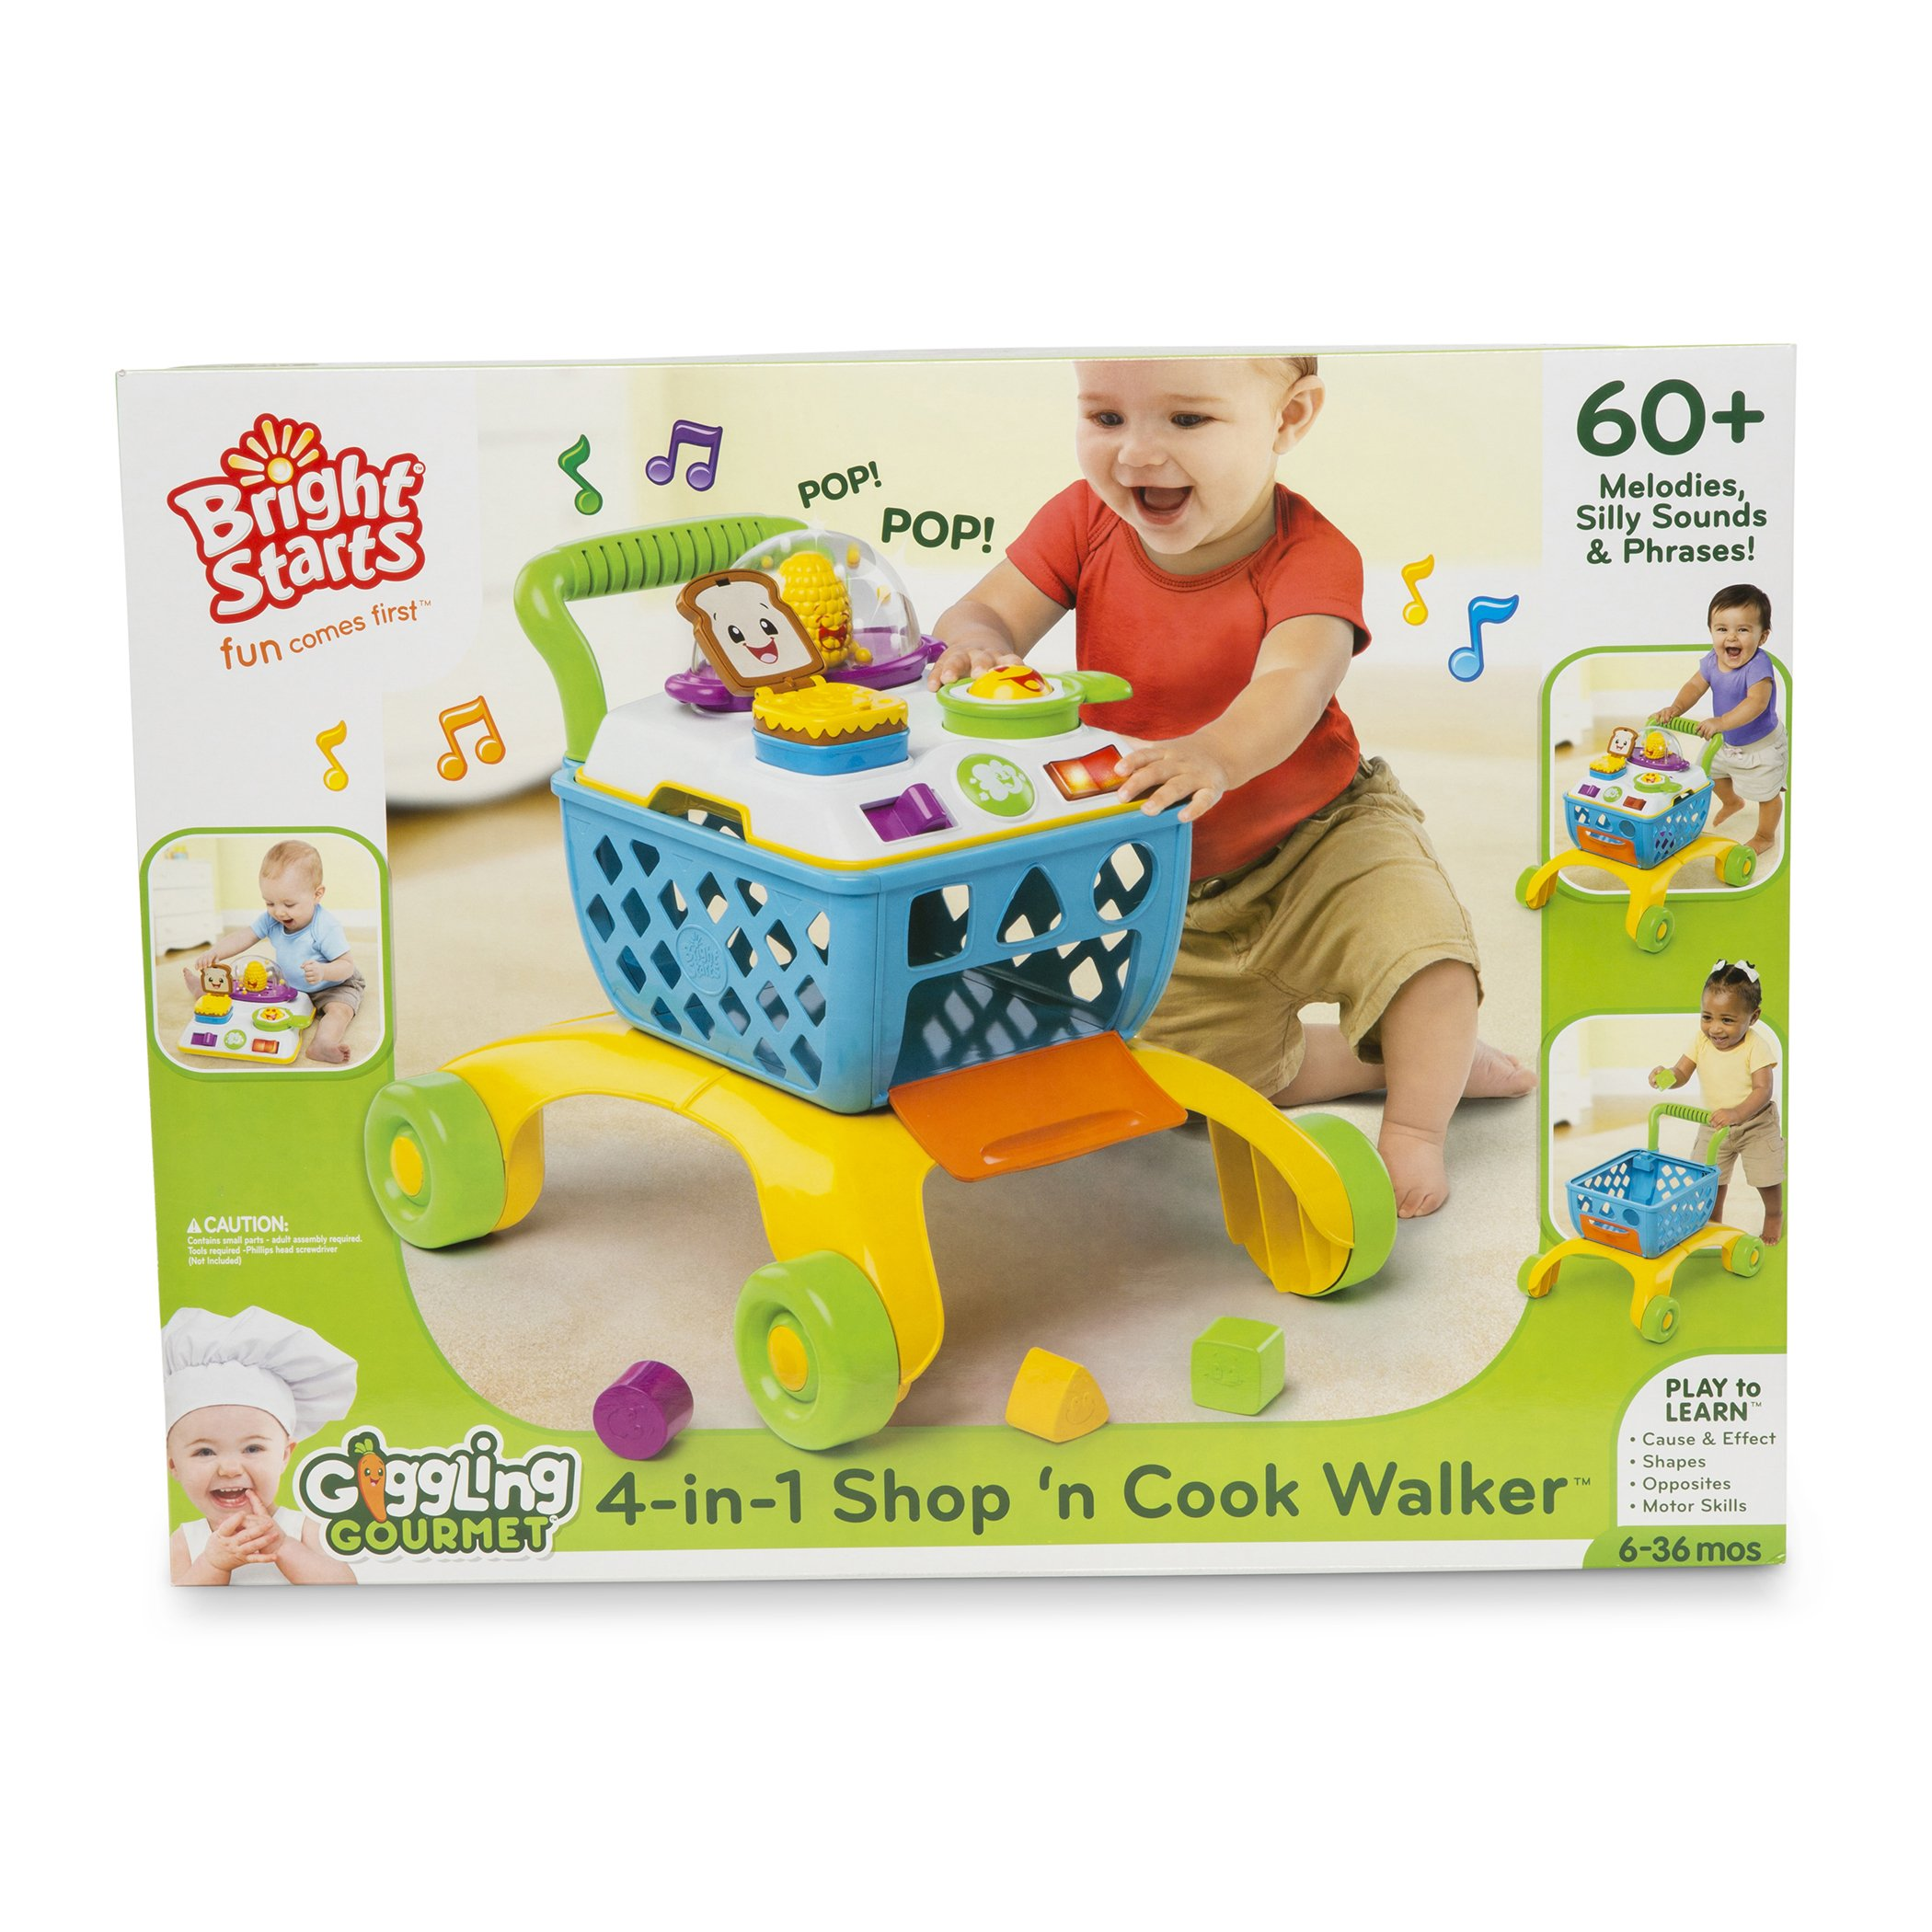 Bright Starts Giggling Gourmet Shop 'n Cook Walker by Bright Starts (Image #7)